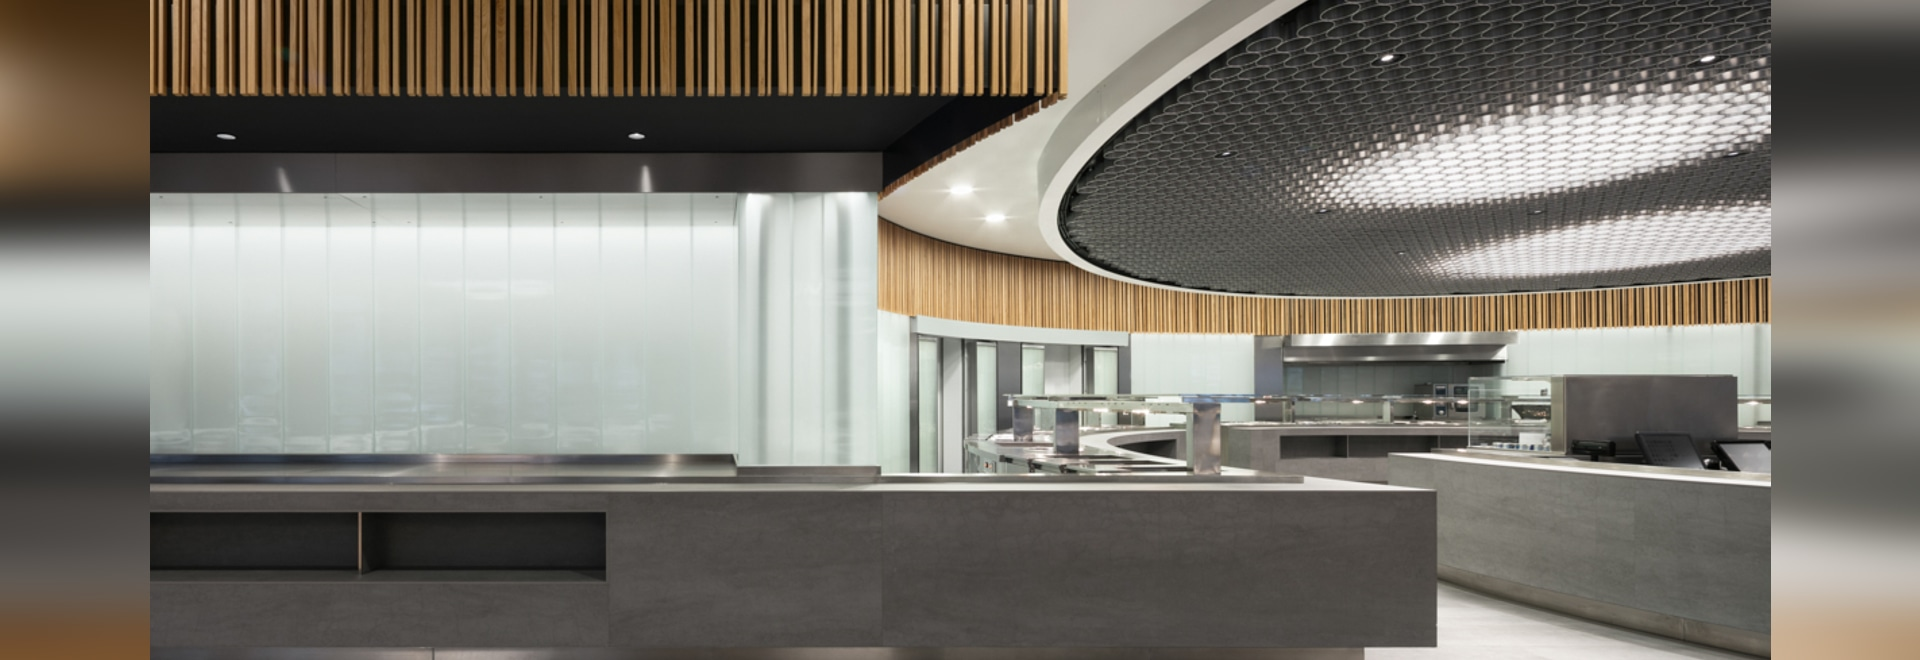 TELEKOM, GERMANY'S NUMBER ONE TELECOMMUNICATIONS COMPANY, HAS PICKED LAMINAM PRODUCTS FOR ITS HEADQUARTERS IN BONN.